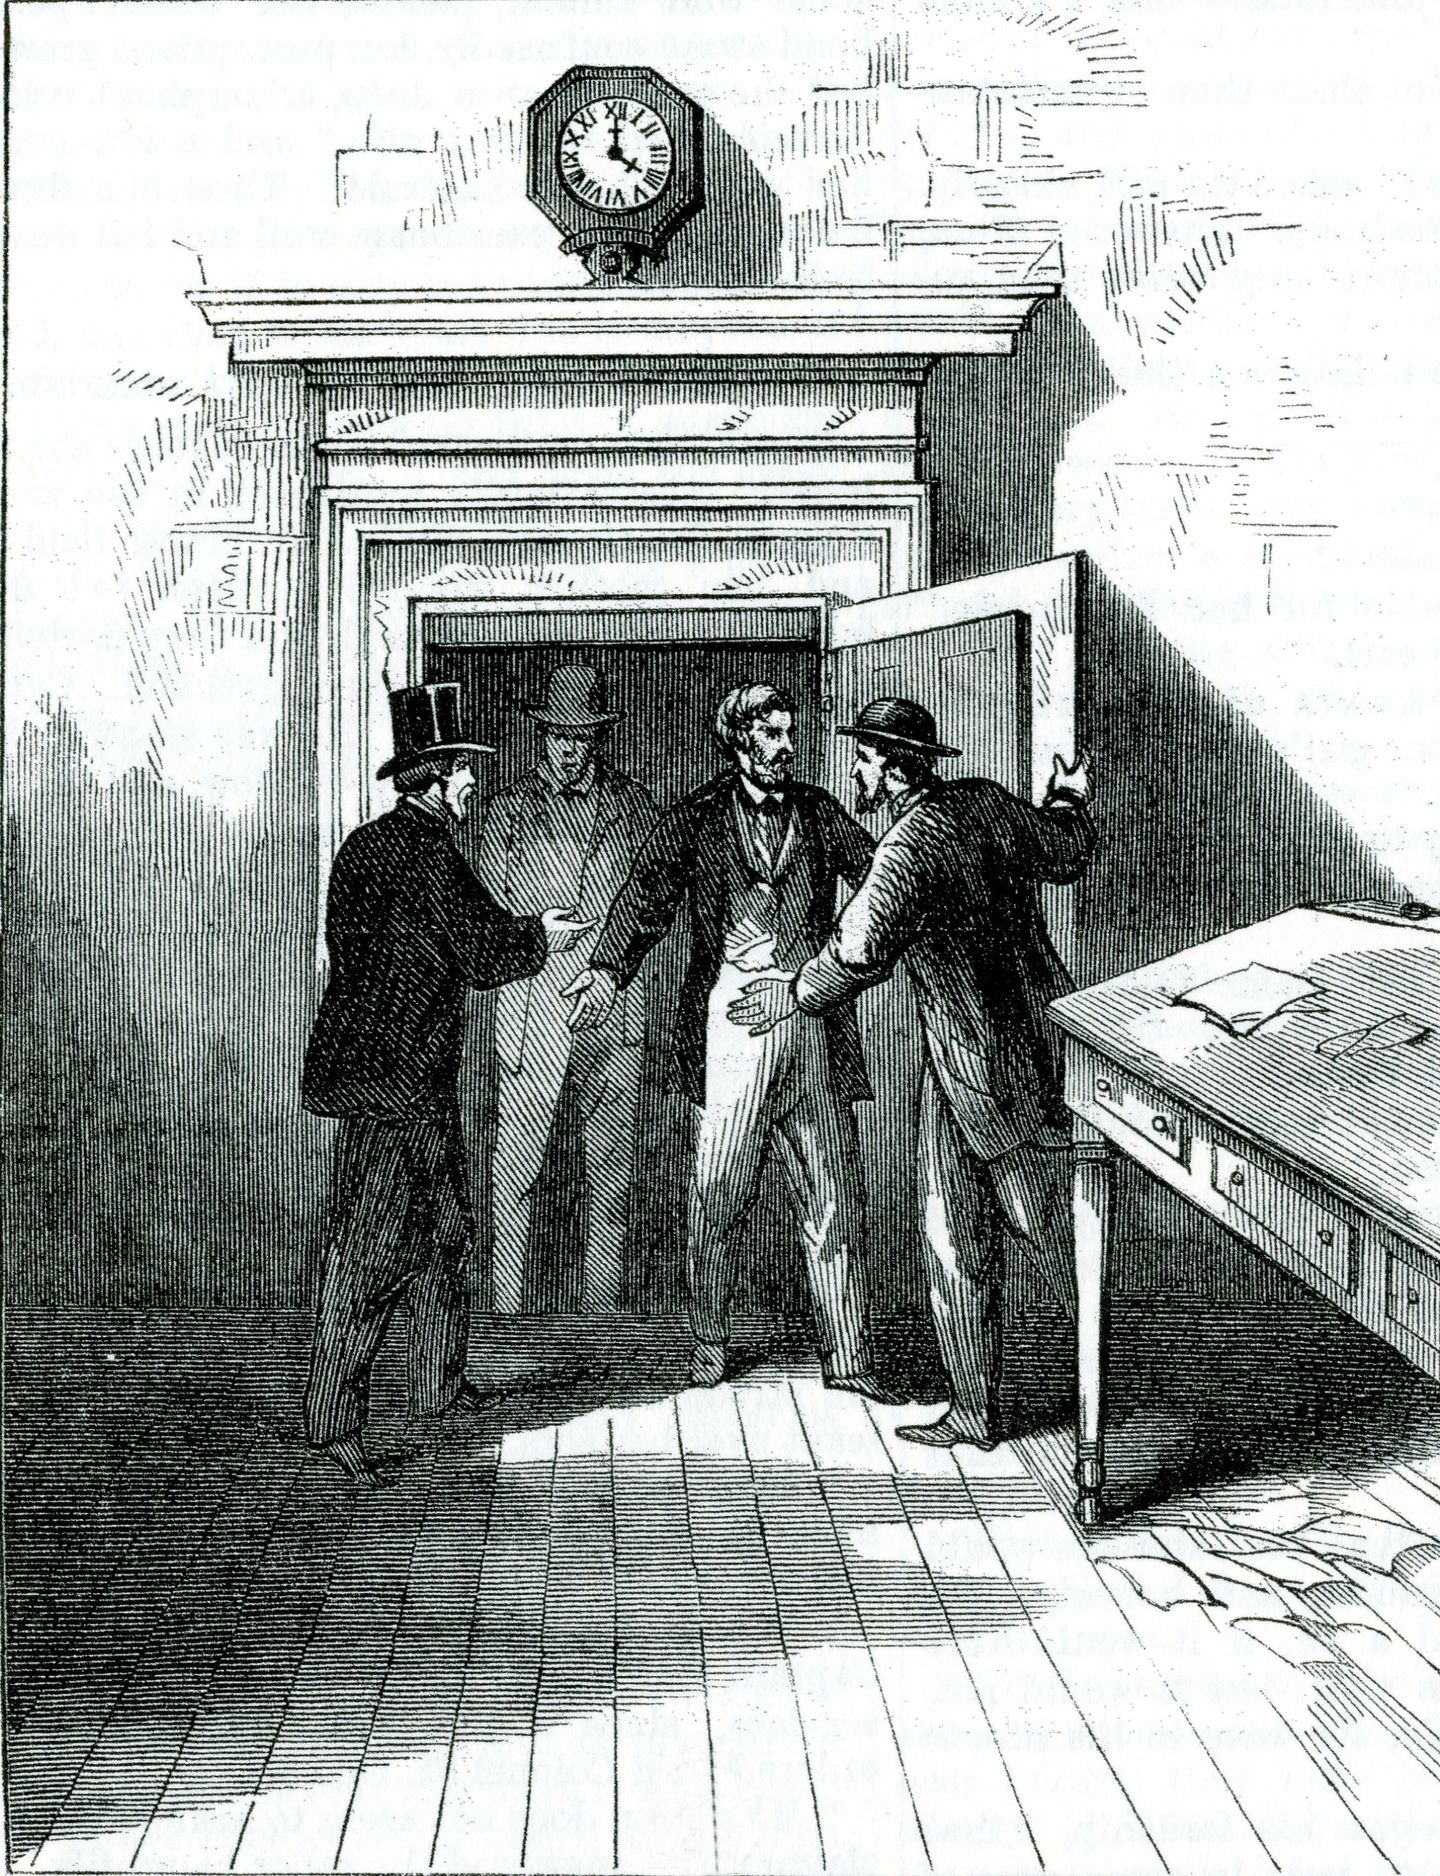 An old editorial illustration depicts cashier Marcas               W. Beardsley and Jackson Clark, a woodsawyer who happened               to be in the Franklin County Bank, being freed from the               vault where they had been imprisoned, even though               Beardsley had pleaded with the robbers explaining it was               airtight. The men, who understood the Confederates planned               to burn the town, feared for their lives either by               suffocation or fire. J. Russell Armington and Dana R.               Bailey heard their shouts and came to their rescue,               however. CREDIT: VERMONT HISTORICAL SOCIETY (these images               originally appeared in Frank Leslie's magazine)